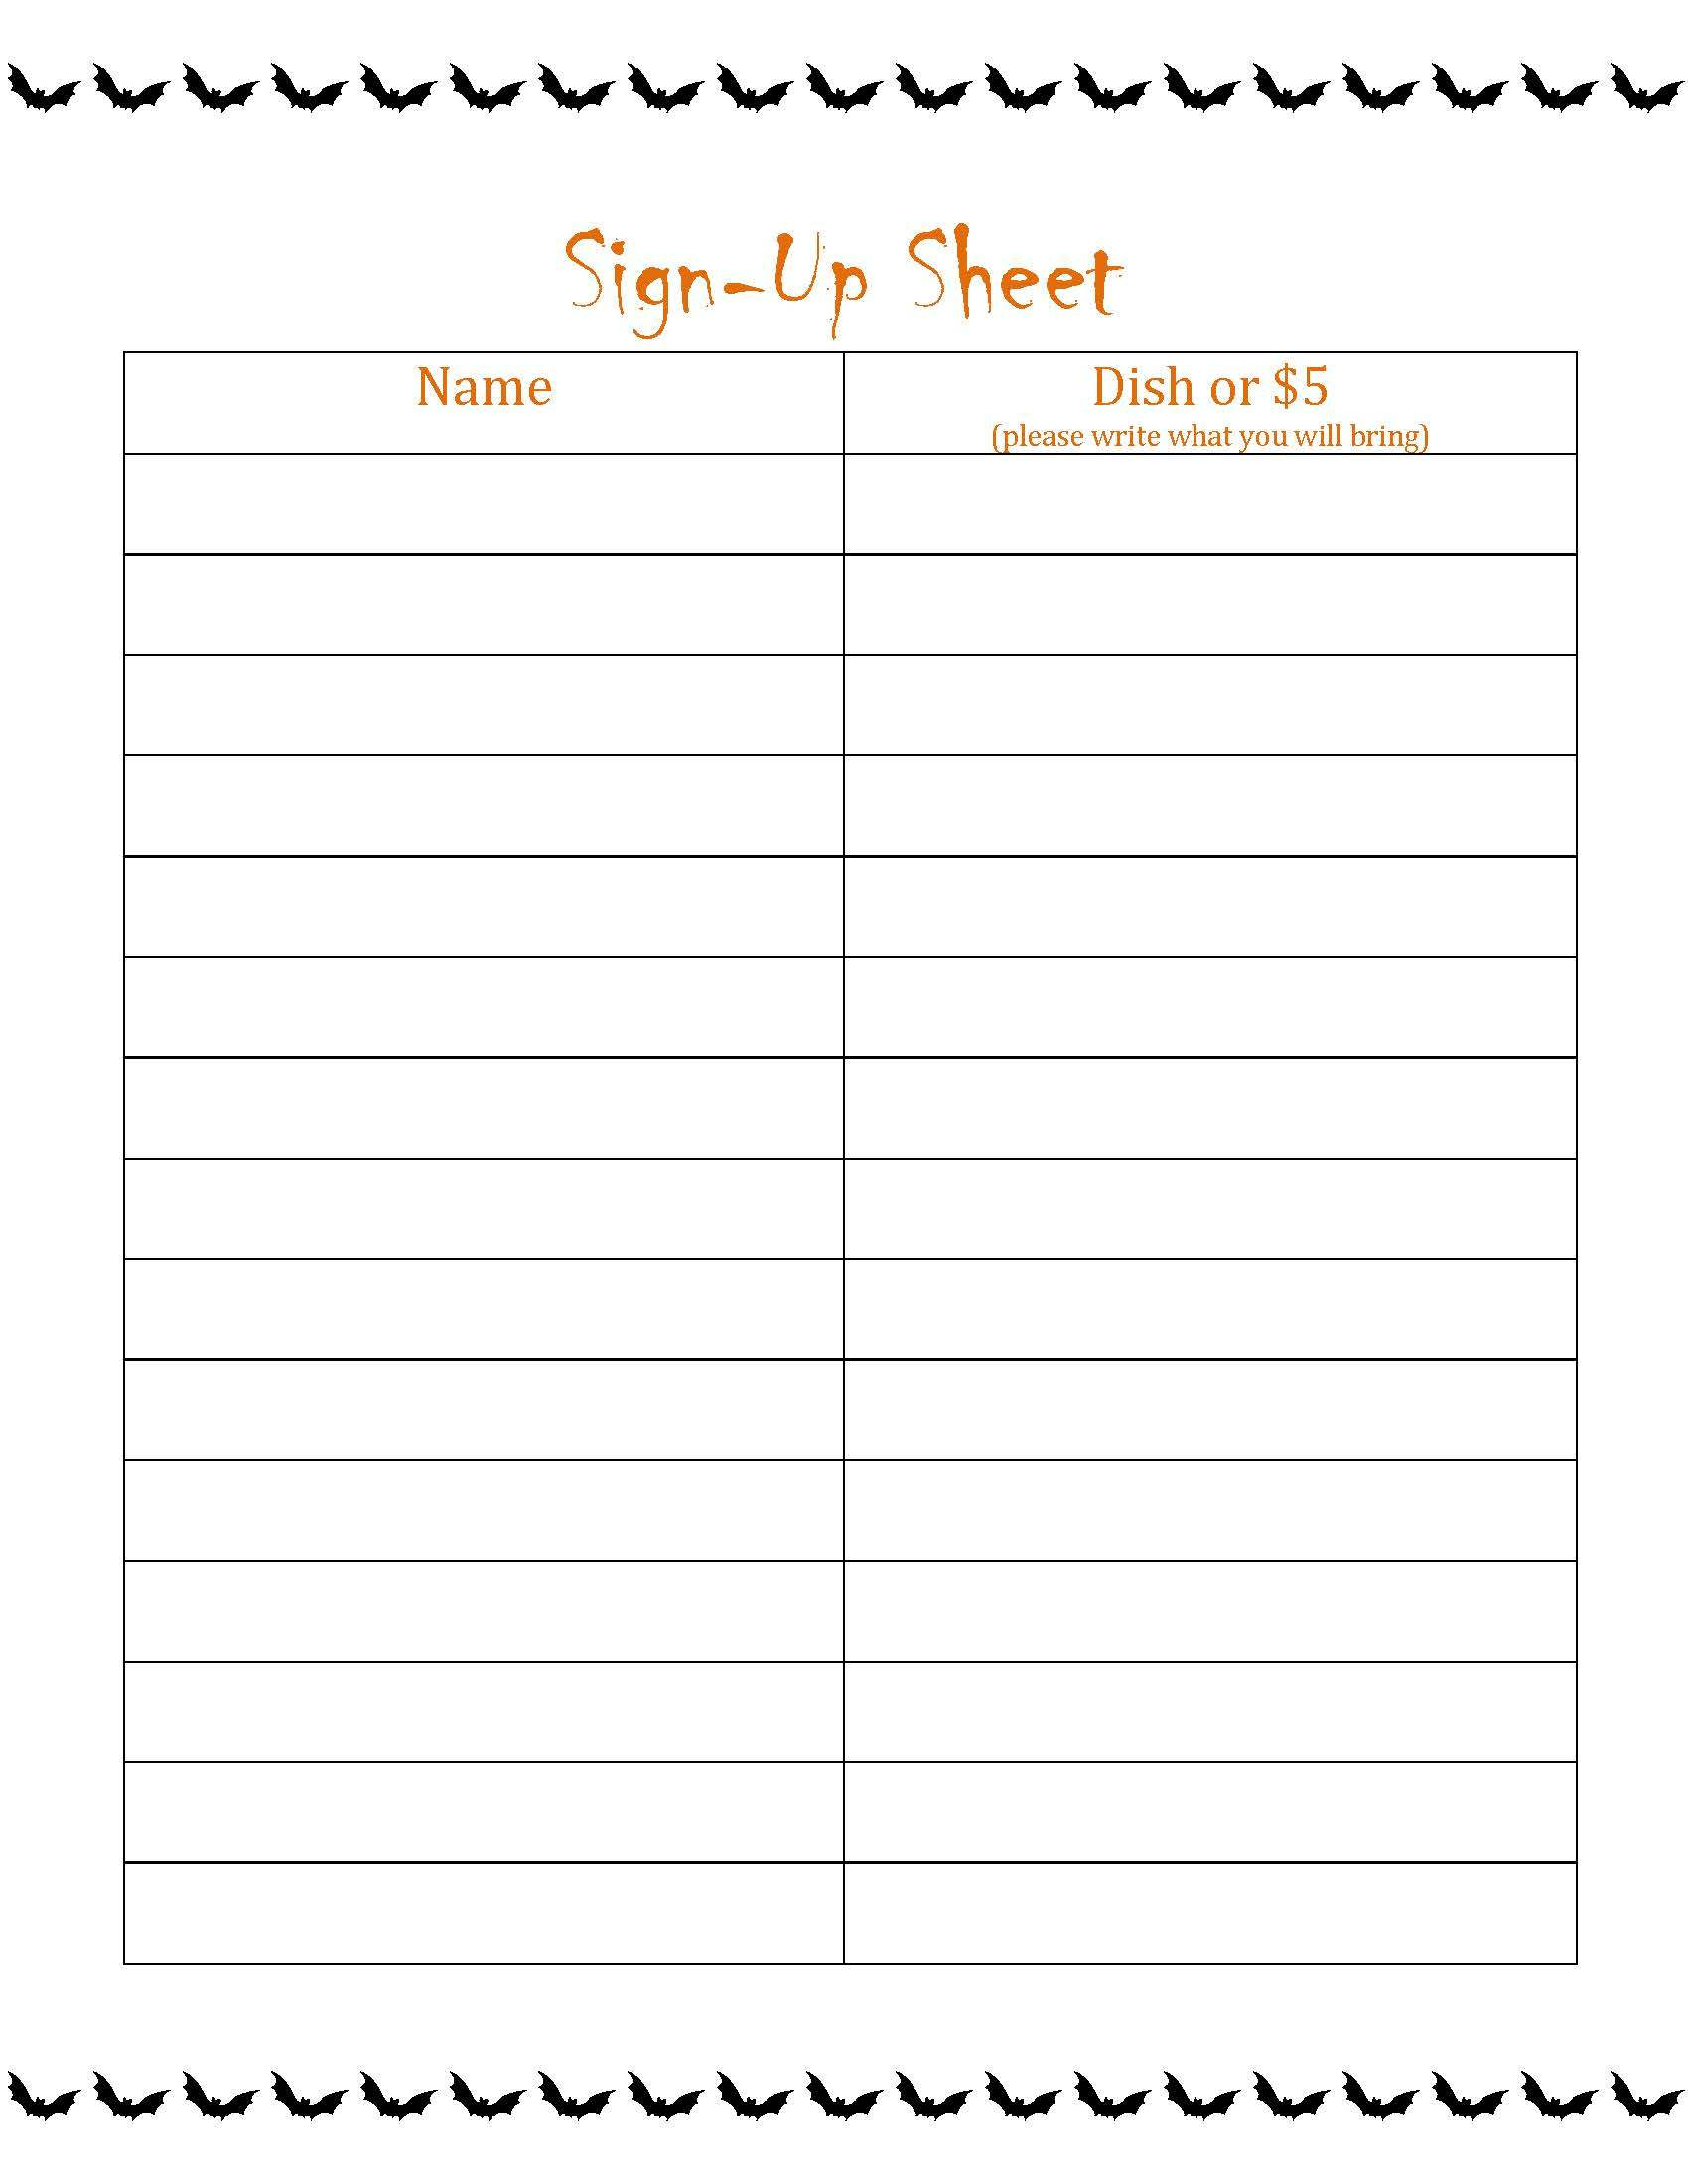 004 Template Ideas Potluck Invitation Free Monthly Sign Up Sheet - Free Printable Sign Up Sheets For Potlucks